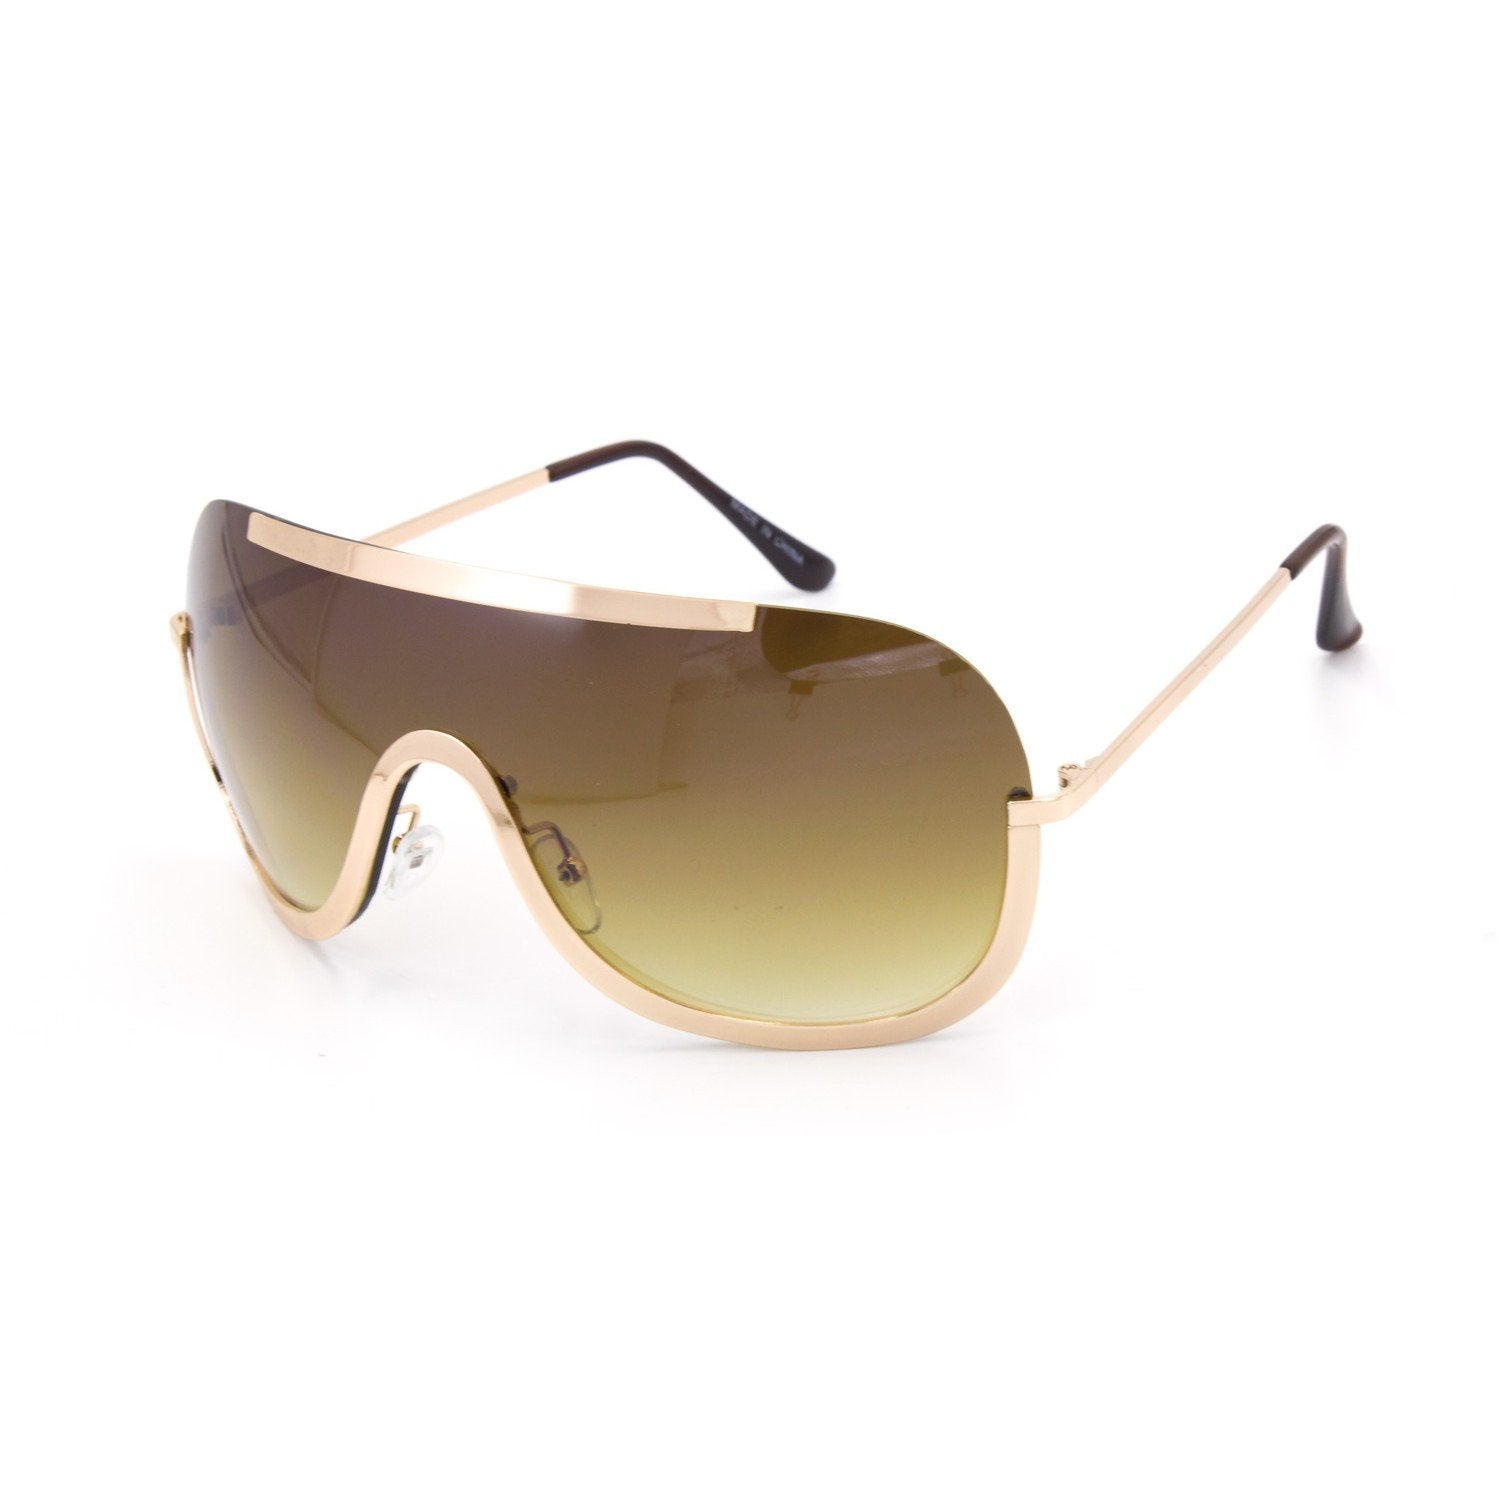 Joselyn Sunglasses - Final Sale